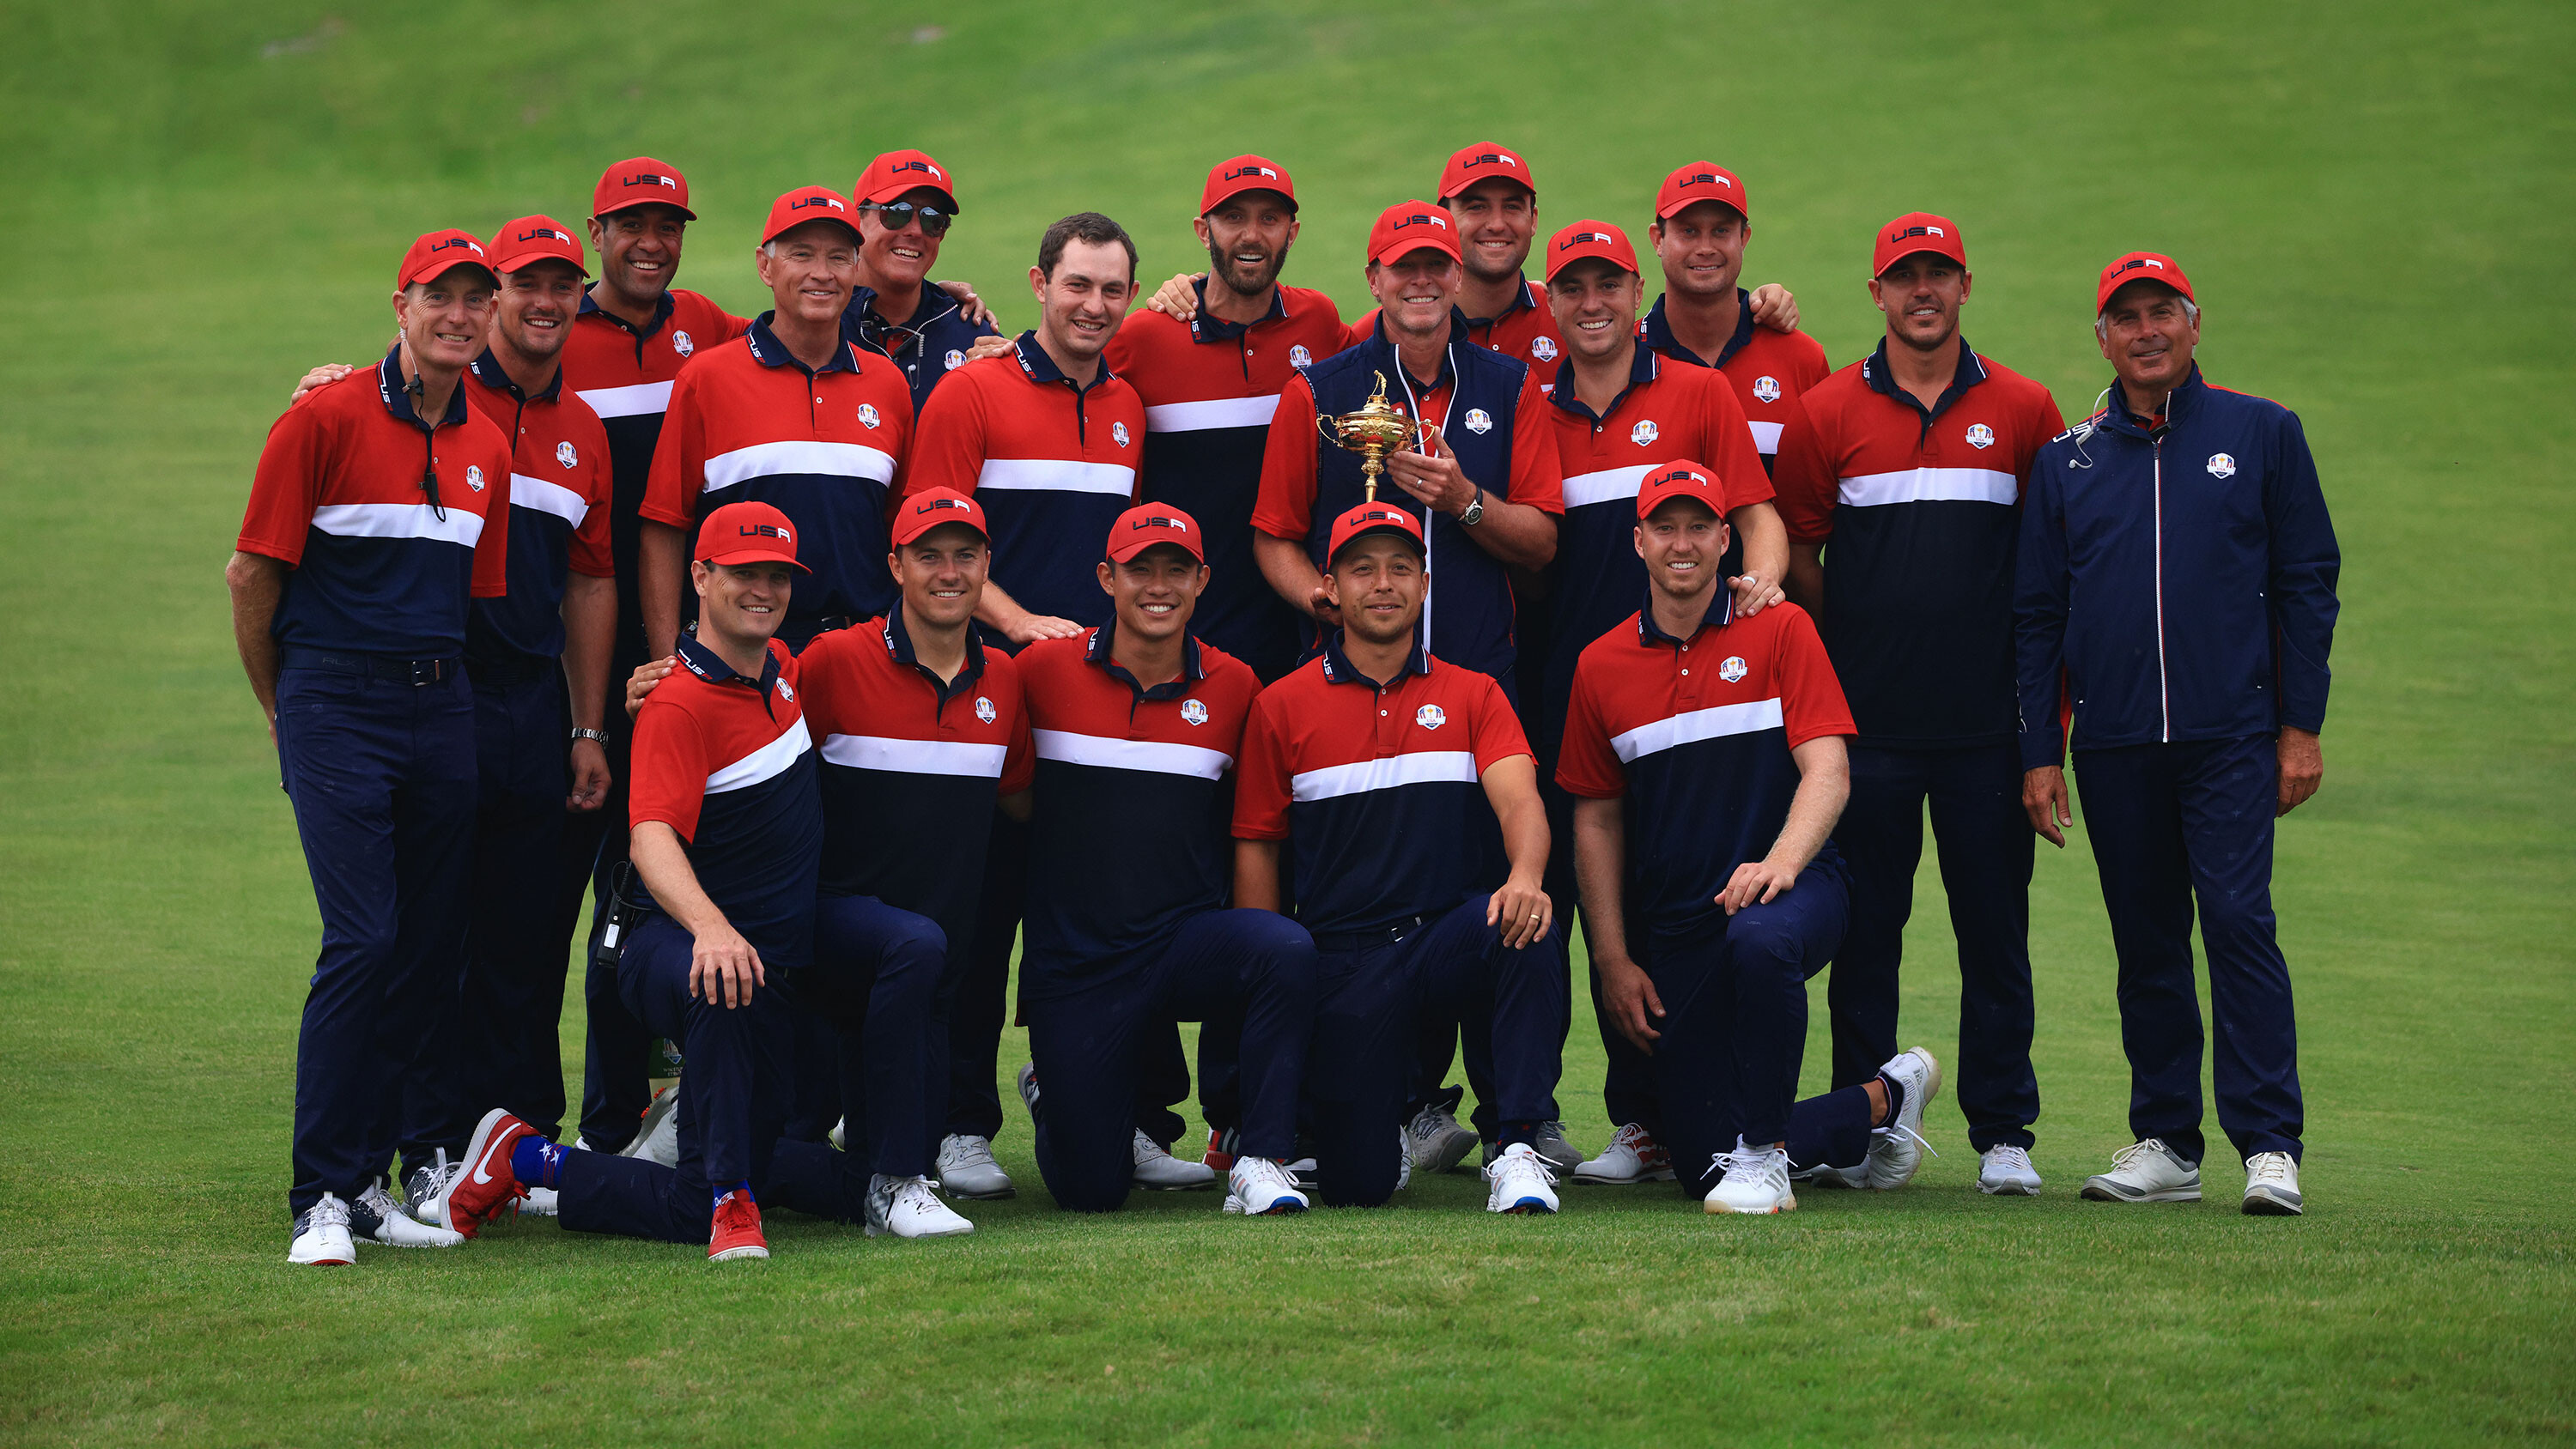 Dustin Johnson: How 'Grandpa' led Team US' young stars to Ryder Cup history